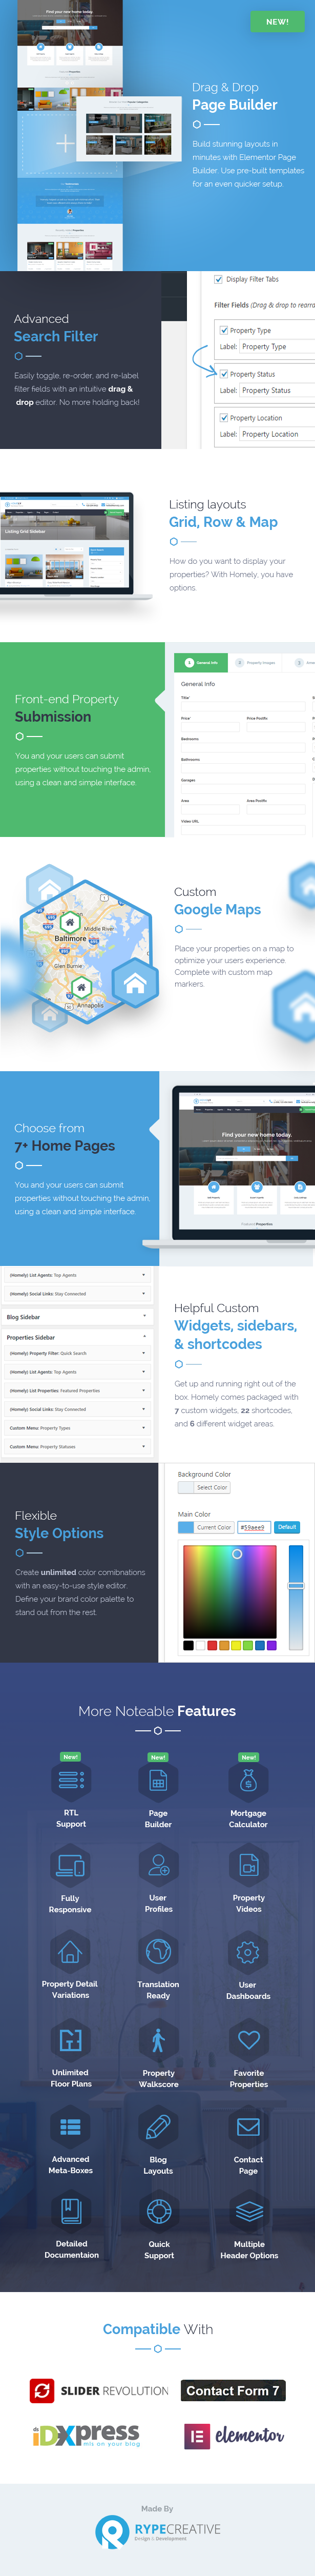 Homely - Real Estate WordPress Theme 2